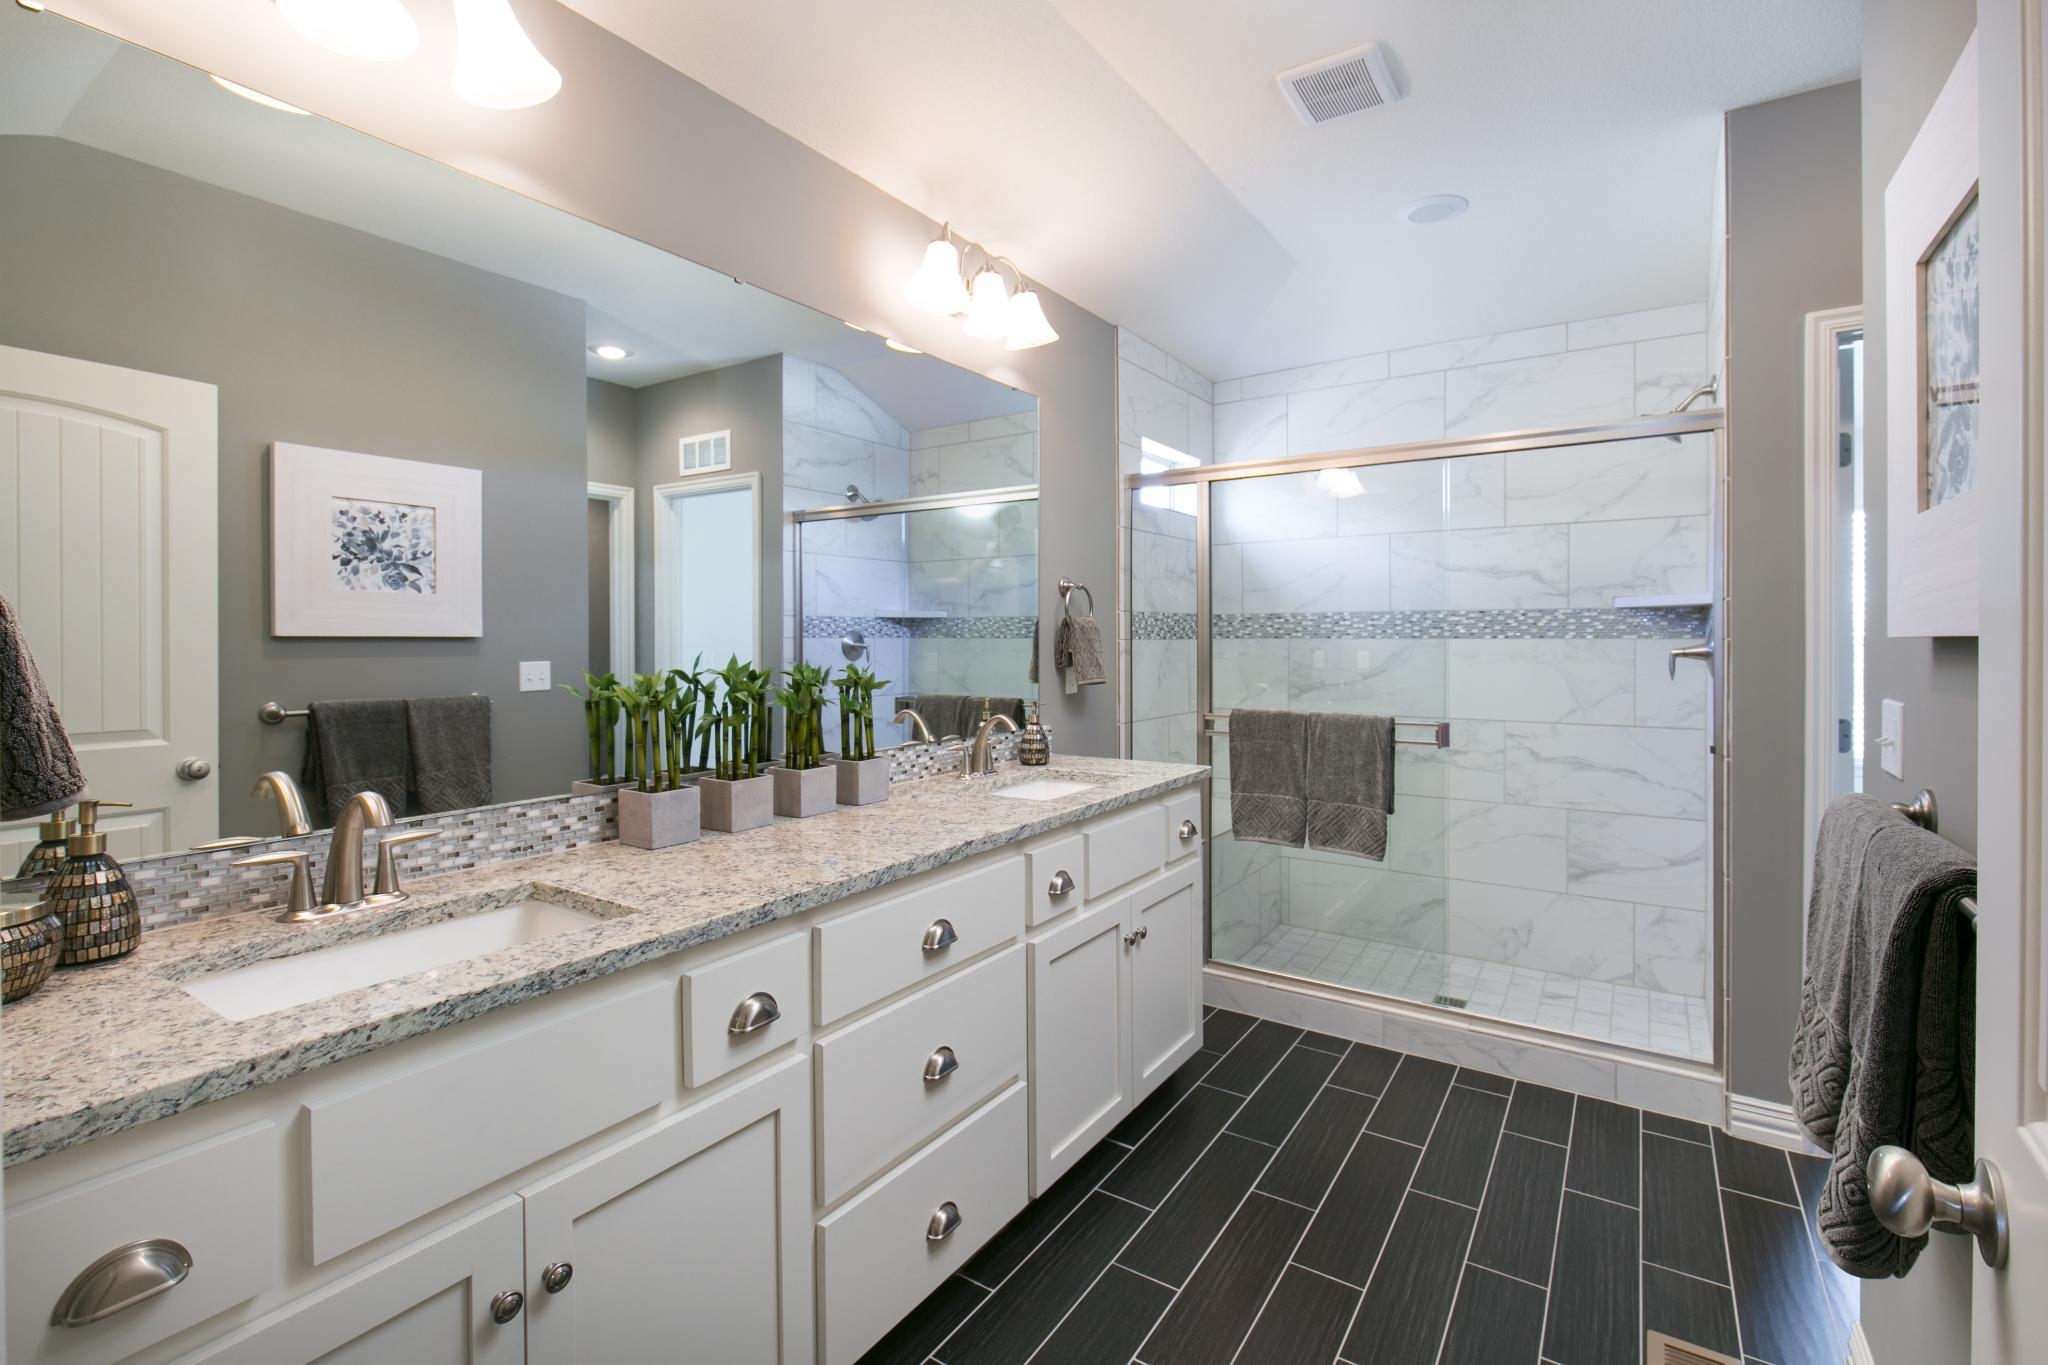 Bathroom featured in the Preston Ridge By Summit Homes in Kansas City, MO